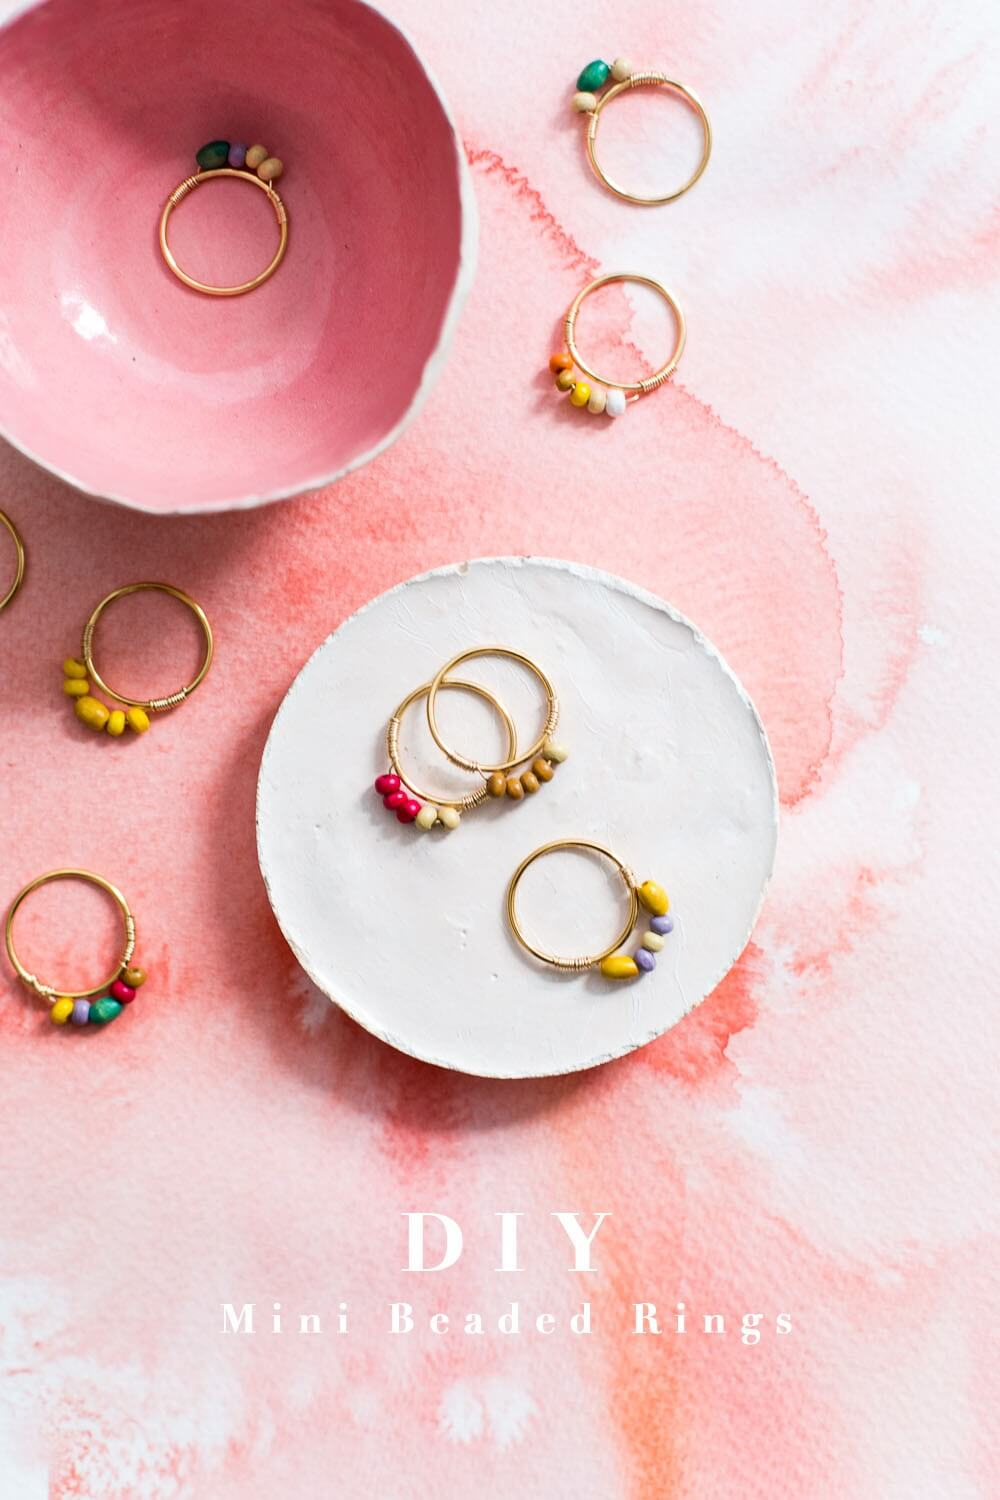 Make these DIY Mini Beaded Rings In Just Minutes, diy rings, diy fashion, jewelry ideas, diy rings for ring toss, diy rings without wire, diy rings module, diy rings gymnastic, diy rings from coins, diy rings singapore, diy ring sling, diy rings to sell, diy rings with paper clips, diy rings for guys, diy rings with wire, diy rings no wire, diy rings out of paper clips, diy rings jewelry making, diy rings box, diy rings mutable, diy ring holder, diy rings eurorack, diy rings organizer, diy rings with paper, diy adjustable rings, diy antler rings, diy acrylic rings, diy apple rings, diy aluminum rings, diy apple rings recipe, how to make diy rings at home, 5 diy rings adjustable, diy the rings ingleby barwick, diy dried apple rings, 10 diy rings easy and adjustable, diy rings anillo, diy binder rings, diy beaded rings, diy beadlock rings, diy button rings, diy belly rings, diy book rings, diy binding rings, diy boho rings, diy braid rings, diy balloon rings, diy bentwood rings, diy bff rings, diy bird rings, diy beaded rings wire, diy beard rings, diy napkin rings, diy boy rings, diy bow rings, how to make rings bigger diy, diy curtain rings, diy candle rings, diy crumpet rings, diy clean rings, diy coin rings, diy curtain rings with clips, diy copper rings, diy claw rings, diy crystal rings, diy calisthenics rings, diy ceramic rings, diy chainmail rings, diy clay rings, diy cooking rings, diy crossfit rings, diy calamari rings, diy cute rings, diy craft rings, diy couple rings, diy cake rings, diy drapery rings, diy drip rings, diy dainty rings, diy d rings, diy dive rings, diy drum rings, diy descender rings, diy napkin rings dollar tree, diy cleaning diamond rings, diy paddle drip rings, diy kayak drip rings, diy donut diamond rings, diy shrinky dink rings, diy kayak paddle drip rings, diy stake pocket d rings, diy rings easy, diy earrings, diy egg rings, diy engagement rings, diy exercise rings, diy earrings holder, diy engraved rings, diy eyebrow rings, diy wire rings easy, diy napkin rings easter, diy curtain eyelet rings, 5 diy easy rings, diy leather earrings, how to make diy easy rings, diy custom engagement rings, easy diy earrings, easy diy engagement rings, diy hoop earrings, diy rings from paper clips, diy fast rings, diy finger rings, diy friendship rings, diy fire rings, diy floral rings, diy fitness rings, diy fidget rings, diy flower rings, diy feather rings, diy napkin rings for weddings, diy napkin rings for thanksgiving, diy napkin rings for christmas, diy solar rings for pool, diy teething rings for babies, diy rings for ring toss game, diy napkin rings for baby shower, diy rings gym, diy rings guys, diy gold rings, diy gymnastics rings stand, diy gemstone rings, diy gymnastic rings hanger, diy glow rings, diy clean gold rings, diy outdoor gymnastics rings, diy wood gymnastic rings, diy hot glue rings, diy pvc gymnastic rings, diy wooden gymnastic rings, diy sea glass rings, diy napkin gold rings, diy lord of the rings gifts, diy rolling pin guide rings, diy hot glue gun ring, diy hair rings, diy handmade rings, diy halo rings, diy hog rings, diy hay rings, diy hub rings, diy heart rings, diy hanging rings, diy hammered rings, diy wire rings heart, diy napkin holder rings, diy led halo rings, how to make rings diy, homemade rings diy, diy led cup holder rings, how to make rings smaller diy, diy infinity rings, diy napkin rings ideas, diy mutable instruments rings, diy wire initial rings, diy router insert rings, diy shop the rings ingleby barwick, diy router table insert rings, diy bath bombs with rings inside, cheap diy napkin rings ideas, ideas diy rings, diy rings jewelry, diy jump rings, diy juggling rings, diy jewelry rings, diy jewelry jump rings, cousin diy jump rings, diy resin jewelry rings, diy wire jewelry rings, diy rings kit, diy key rings, diy knuckle rings, diy key rings pinterest, diy keychain rings, diy knot rings, diy key rings for sale, diy o rings keyboard, diy wooden key rings, how to make diy key rings, diy photo key rings, easy diy key rings, plastic keyrings diy, diy clay keyrings, diy leather key rings, mutable instruments rings diy kit, diy fathers day keyrings, diy fabric covered key rings, diy kit keyrings, diy lampshade rings, diy leather rings, diy lip rings, diy large rings, diy leaf rings, diy fake lip rings, diy mood rings, diy metal rings, diy mens rings, diy midi rings, diy making rings, diy macrame rings, diy monkey rings, diy minimalist rings, diy micro rings, diy male rings, diy mini rings, diy english muffin rings, diy telescope mounting rings, diy breast milk rings, diy homemade rings, diy rings no tools, diy napkin rings christmas, diy napkin rings pinterest, diy nose rings, diy nipple rings non piercing, diy napkin rings with ribbon, diy napkin rings wedding reception, diy notebook rings, diy ninja rings, diy napkin rings for paper napkins, diy napkin rings toilet paper, diy neck rings, diy onion rings, diy olympic rings, diy o rings, diy old rings, diy baked onion rings, diytomake.com